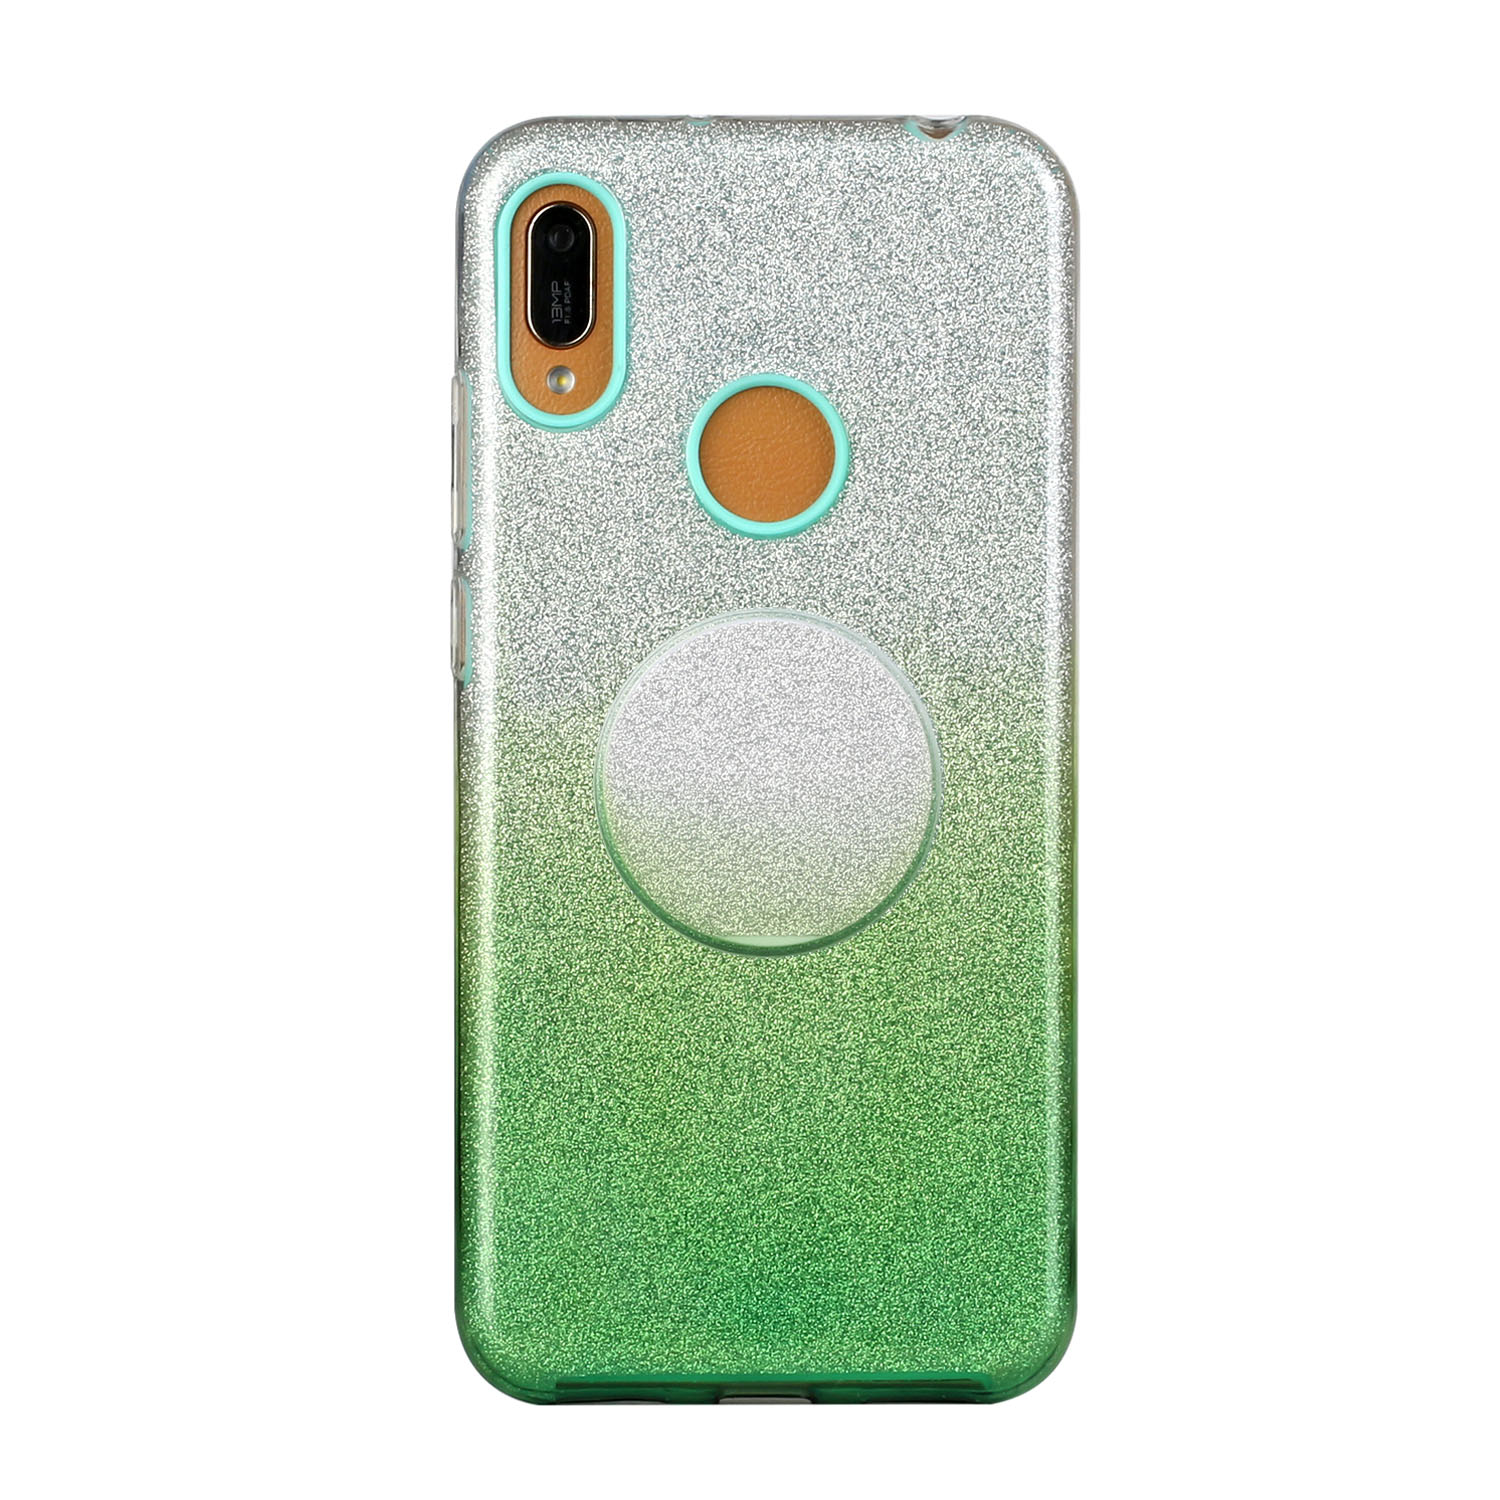 for HUAWEI Y5 2019/HONOR 8S/Y5/PSmart/honor 10 LITE Phone Case Gradient Color Glitter Powder Phone Cover with Airbag Bracket green